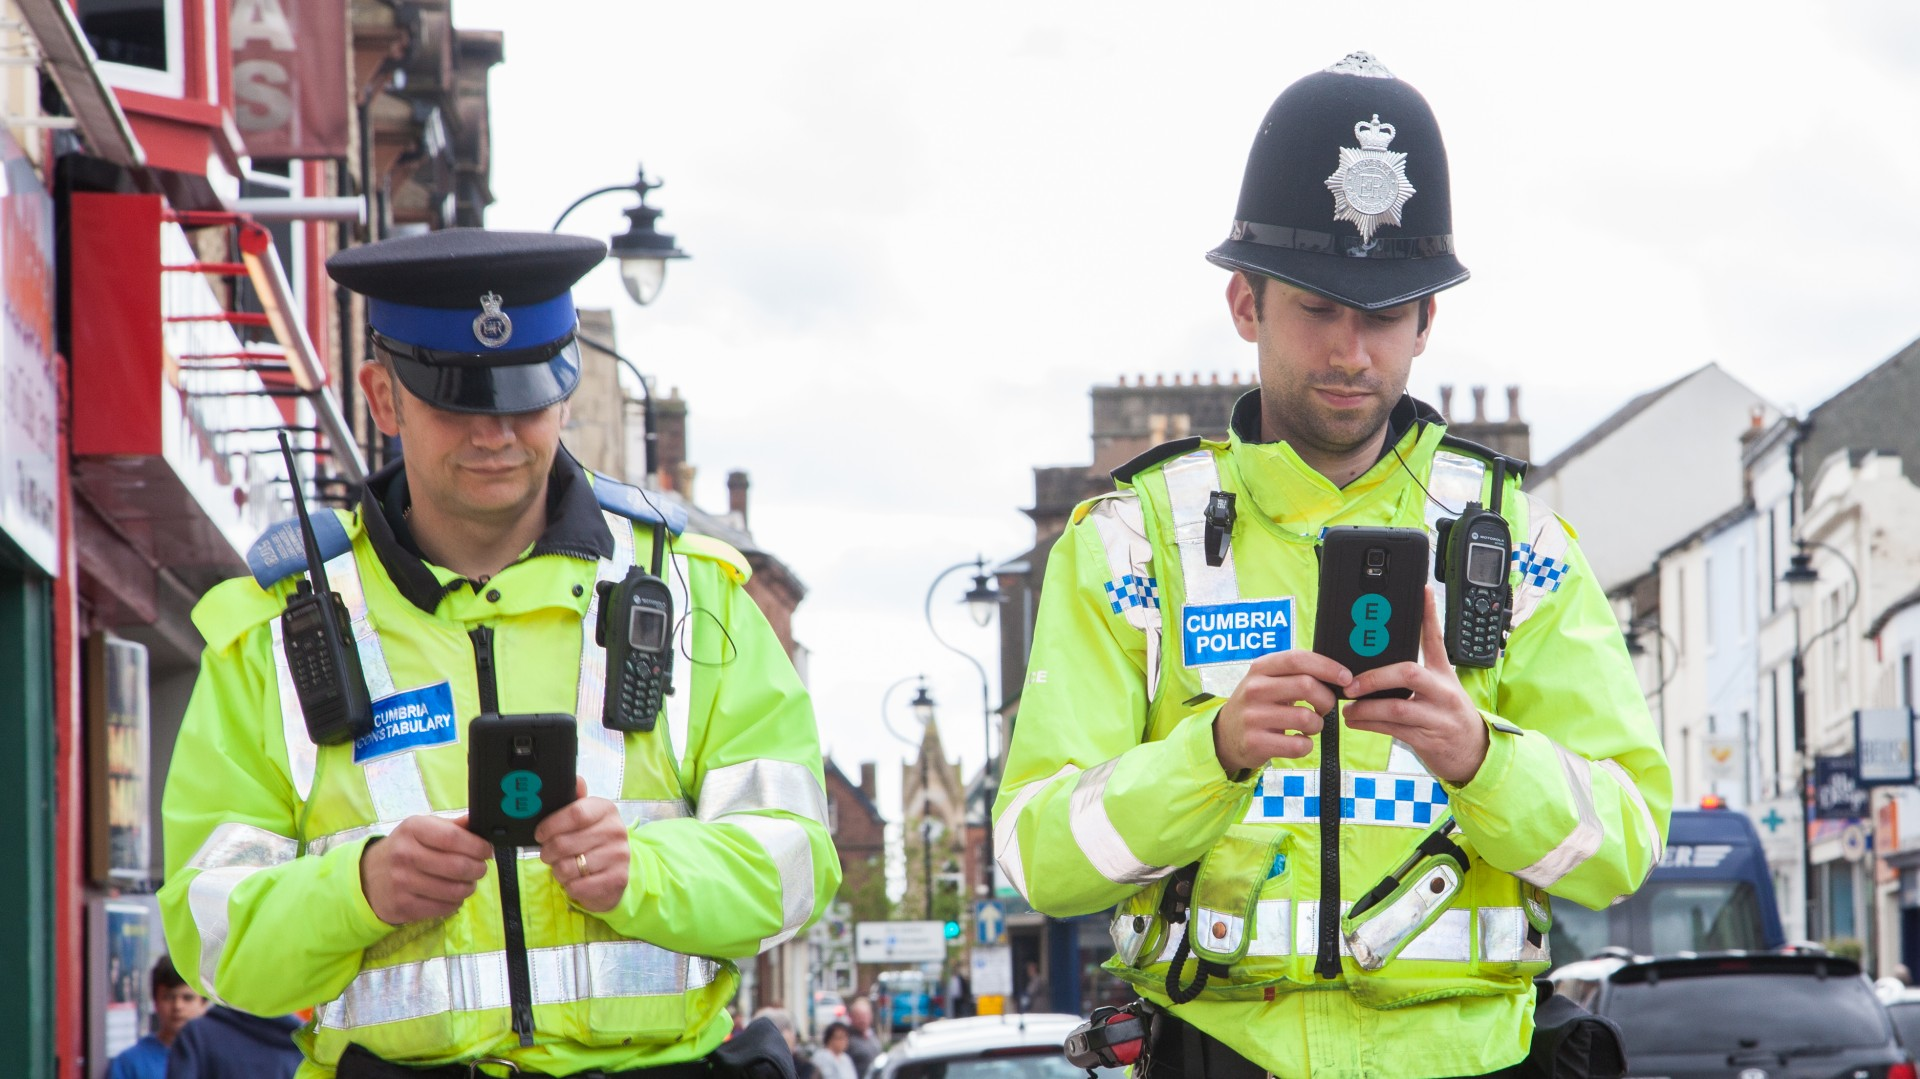 Cumbria Constabulary frontline officers equipped with 4G Samsung Galaxy Note 4s from EE